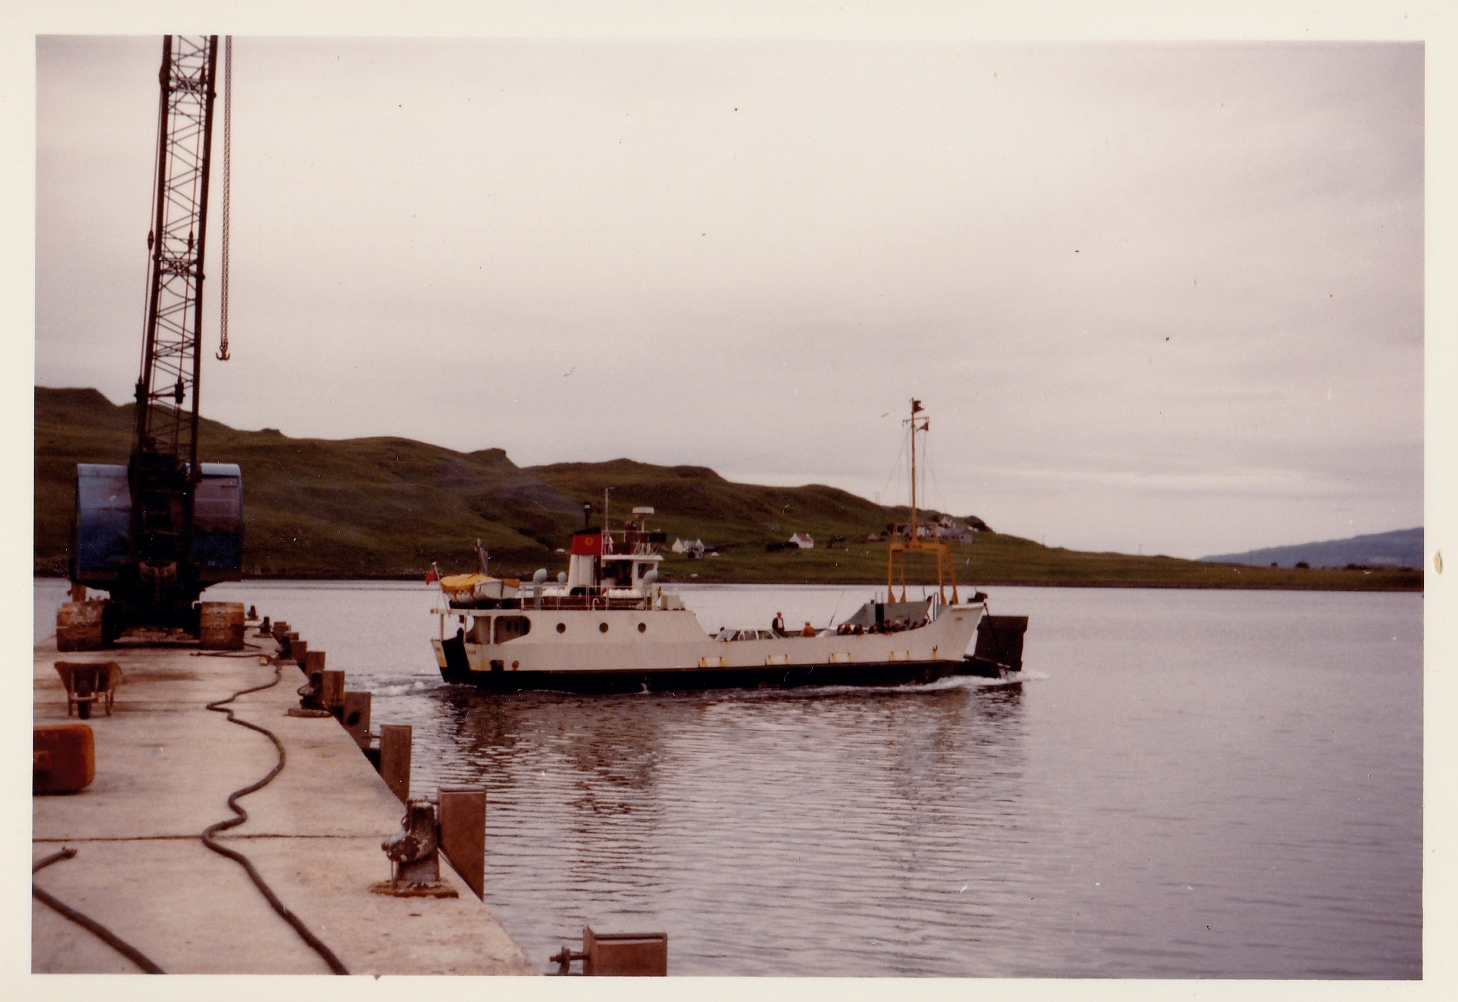 Canna leaving Sconser (Jim Aikman Smith)